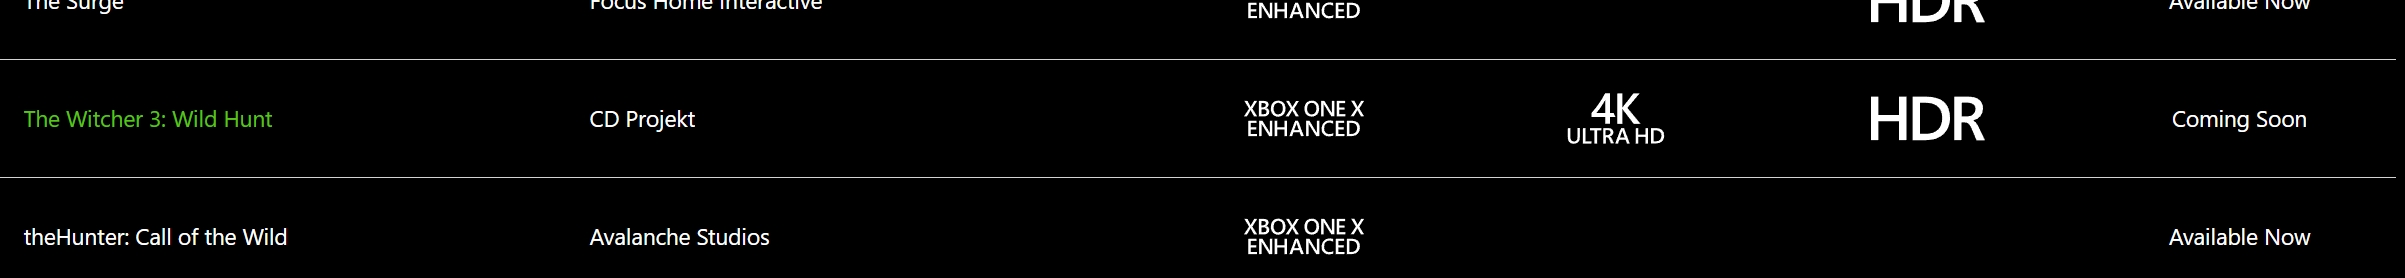 The Witcher 3 Xbox One X Update Could Add Support for HDR Displays